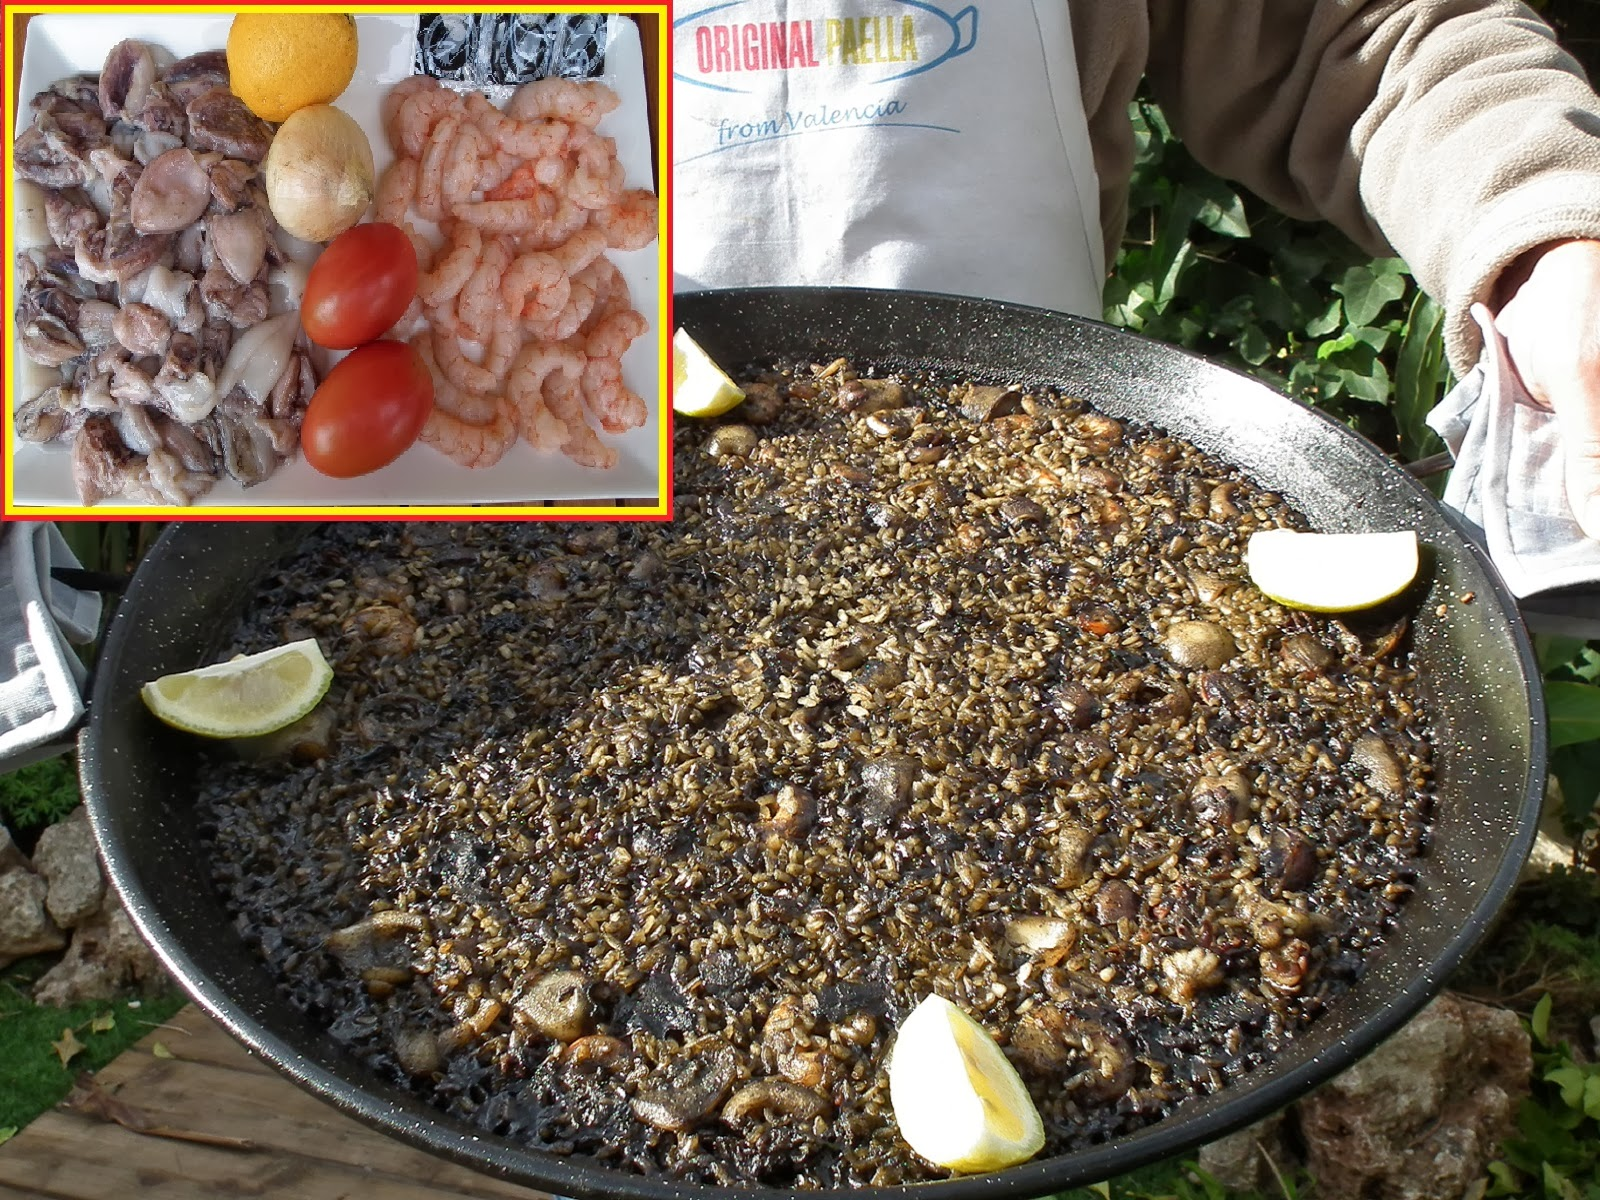 arroz negro black rice paella recipe